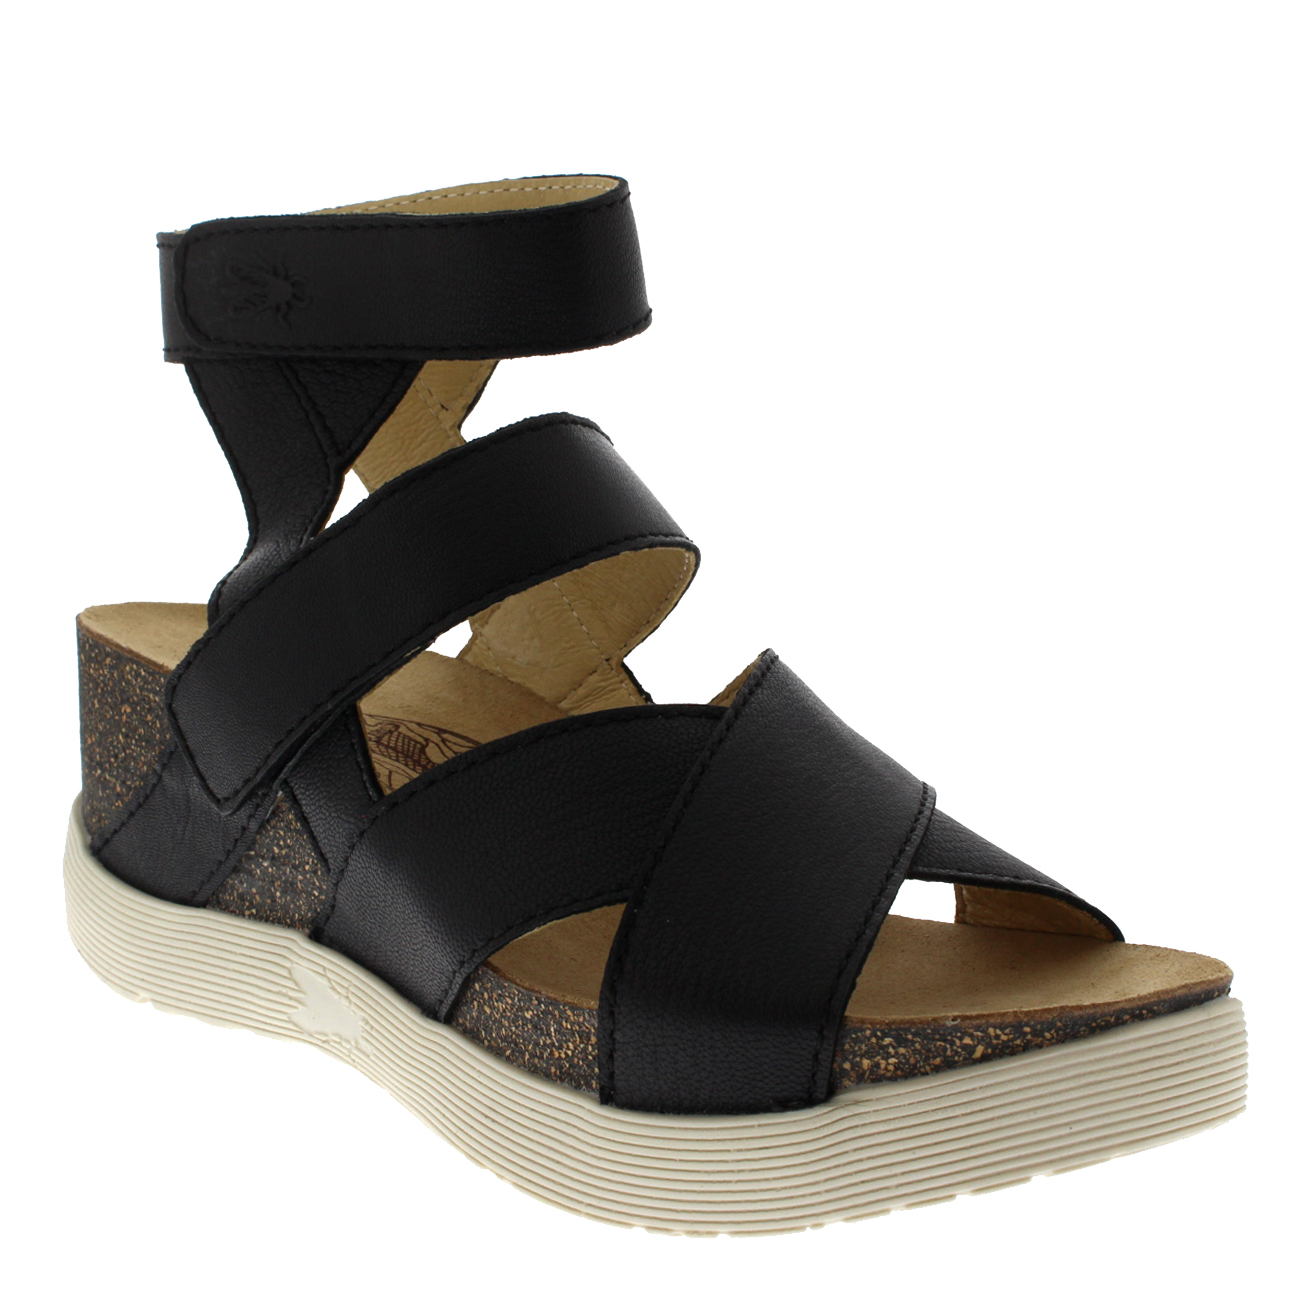 Womens-Fly-London-Wedge-Leather-Open-Toe-Summer-Cut-Out-Sandals-US-5-12 thumbnail 12